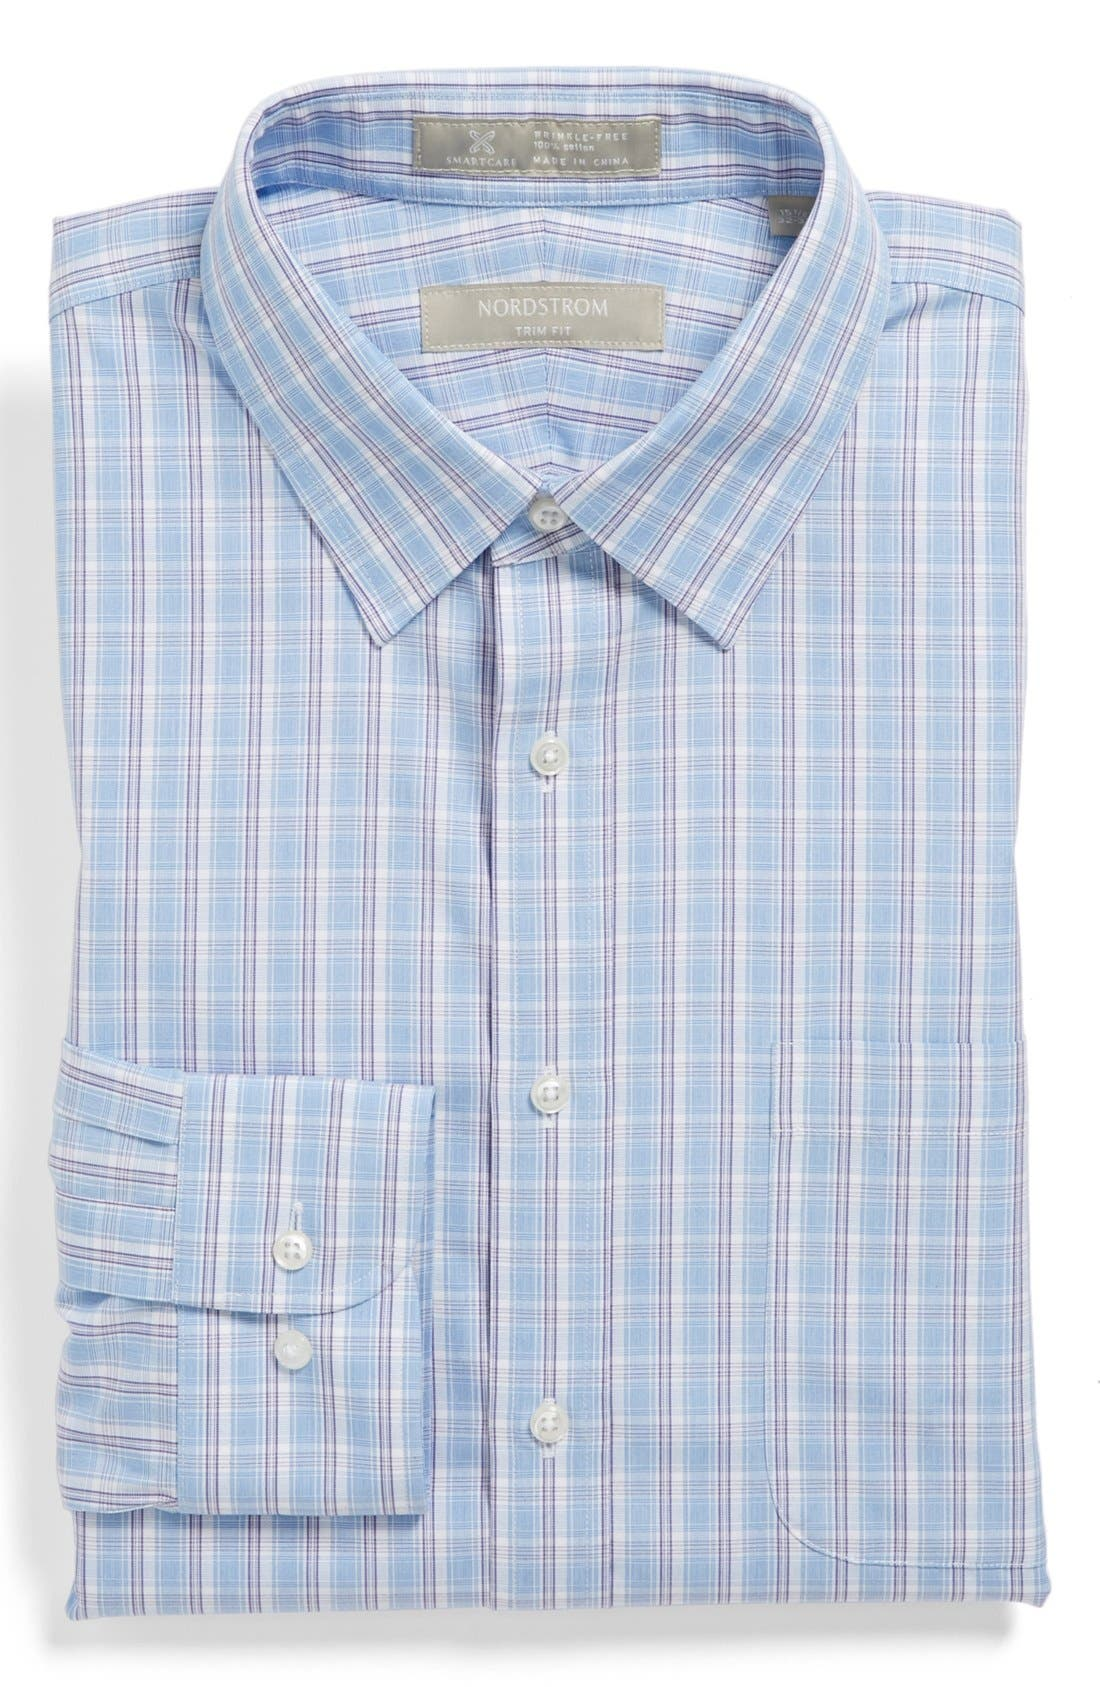 Alternate Image 1 Selected - Nordstrom Smartcare™ Wrinkle Free Trim Fit Dress Shirt